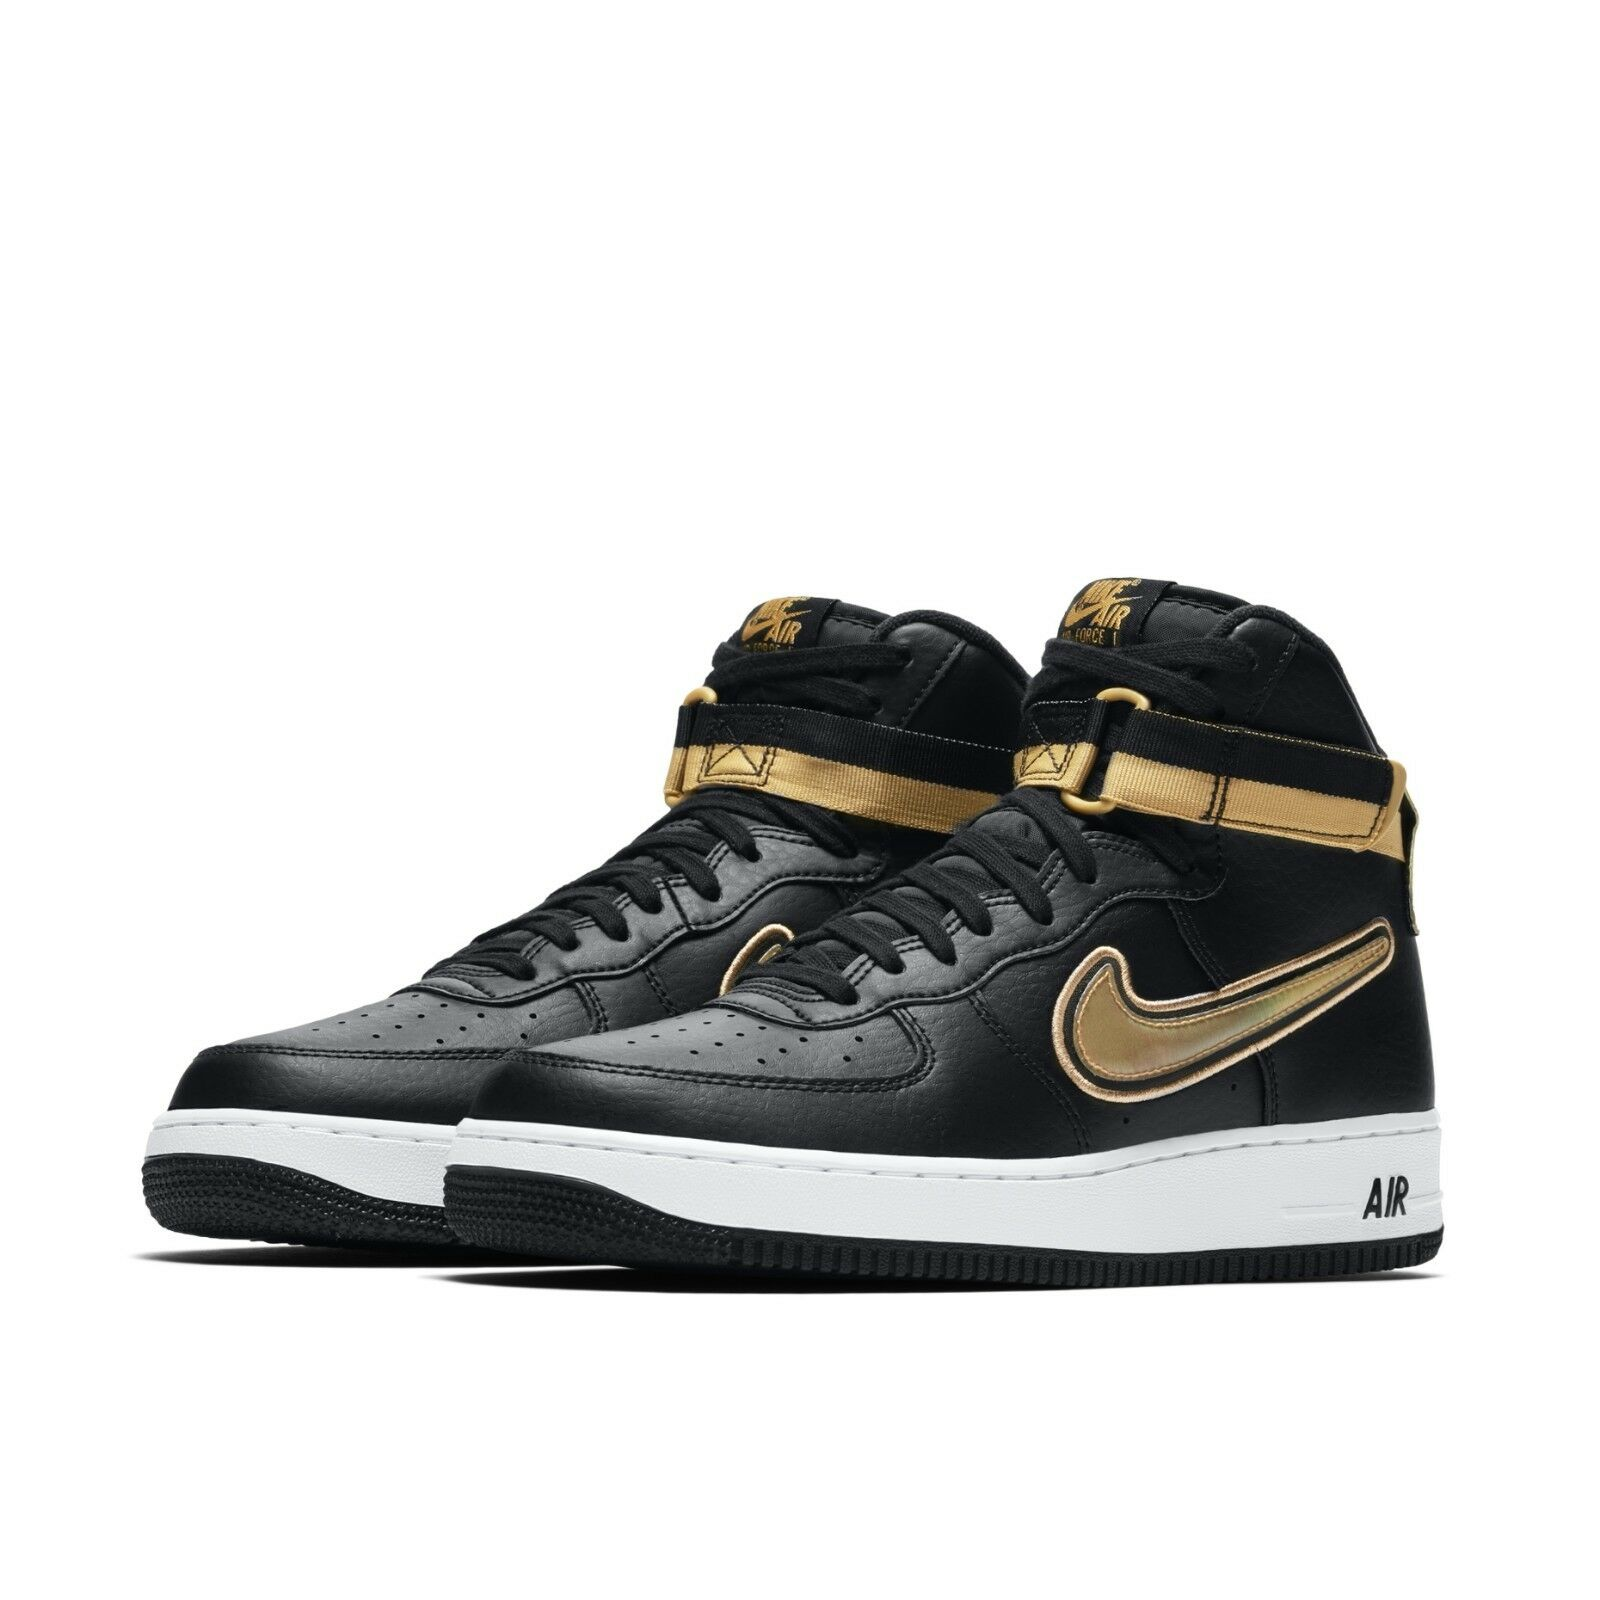 Details about Nike Mens Air Force 1 High 07 LV8 Sport AF1 NBA Black  Metallic Gold AV3938,001